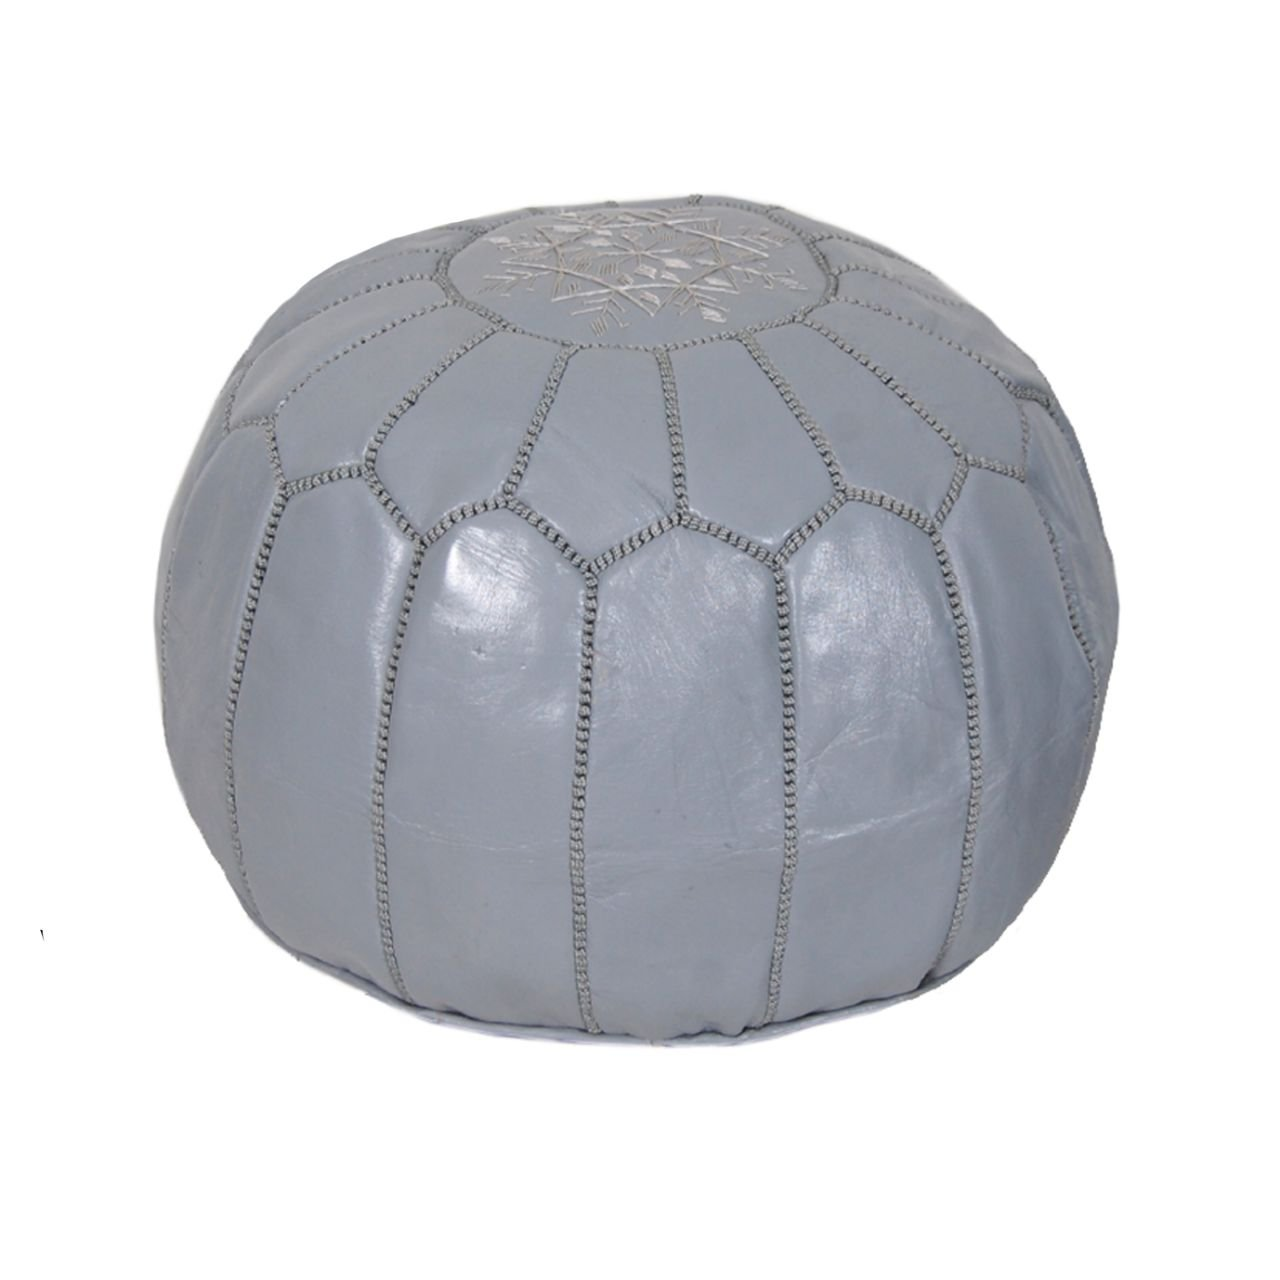 Moroccan Pouf Ottoman Footstool (Leather) Genuine Hand-Stitched Seating | Unstuffed | Living Room, Bedroom, Sitting Area | Grey | Exclusive Designs